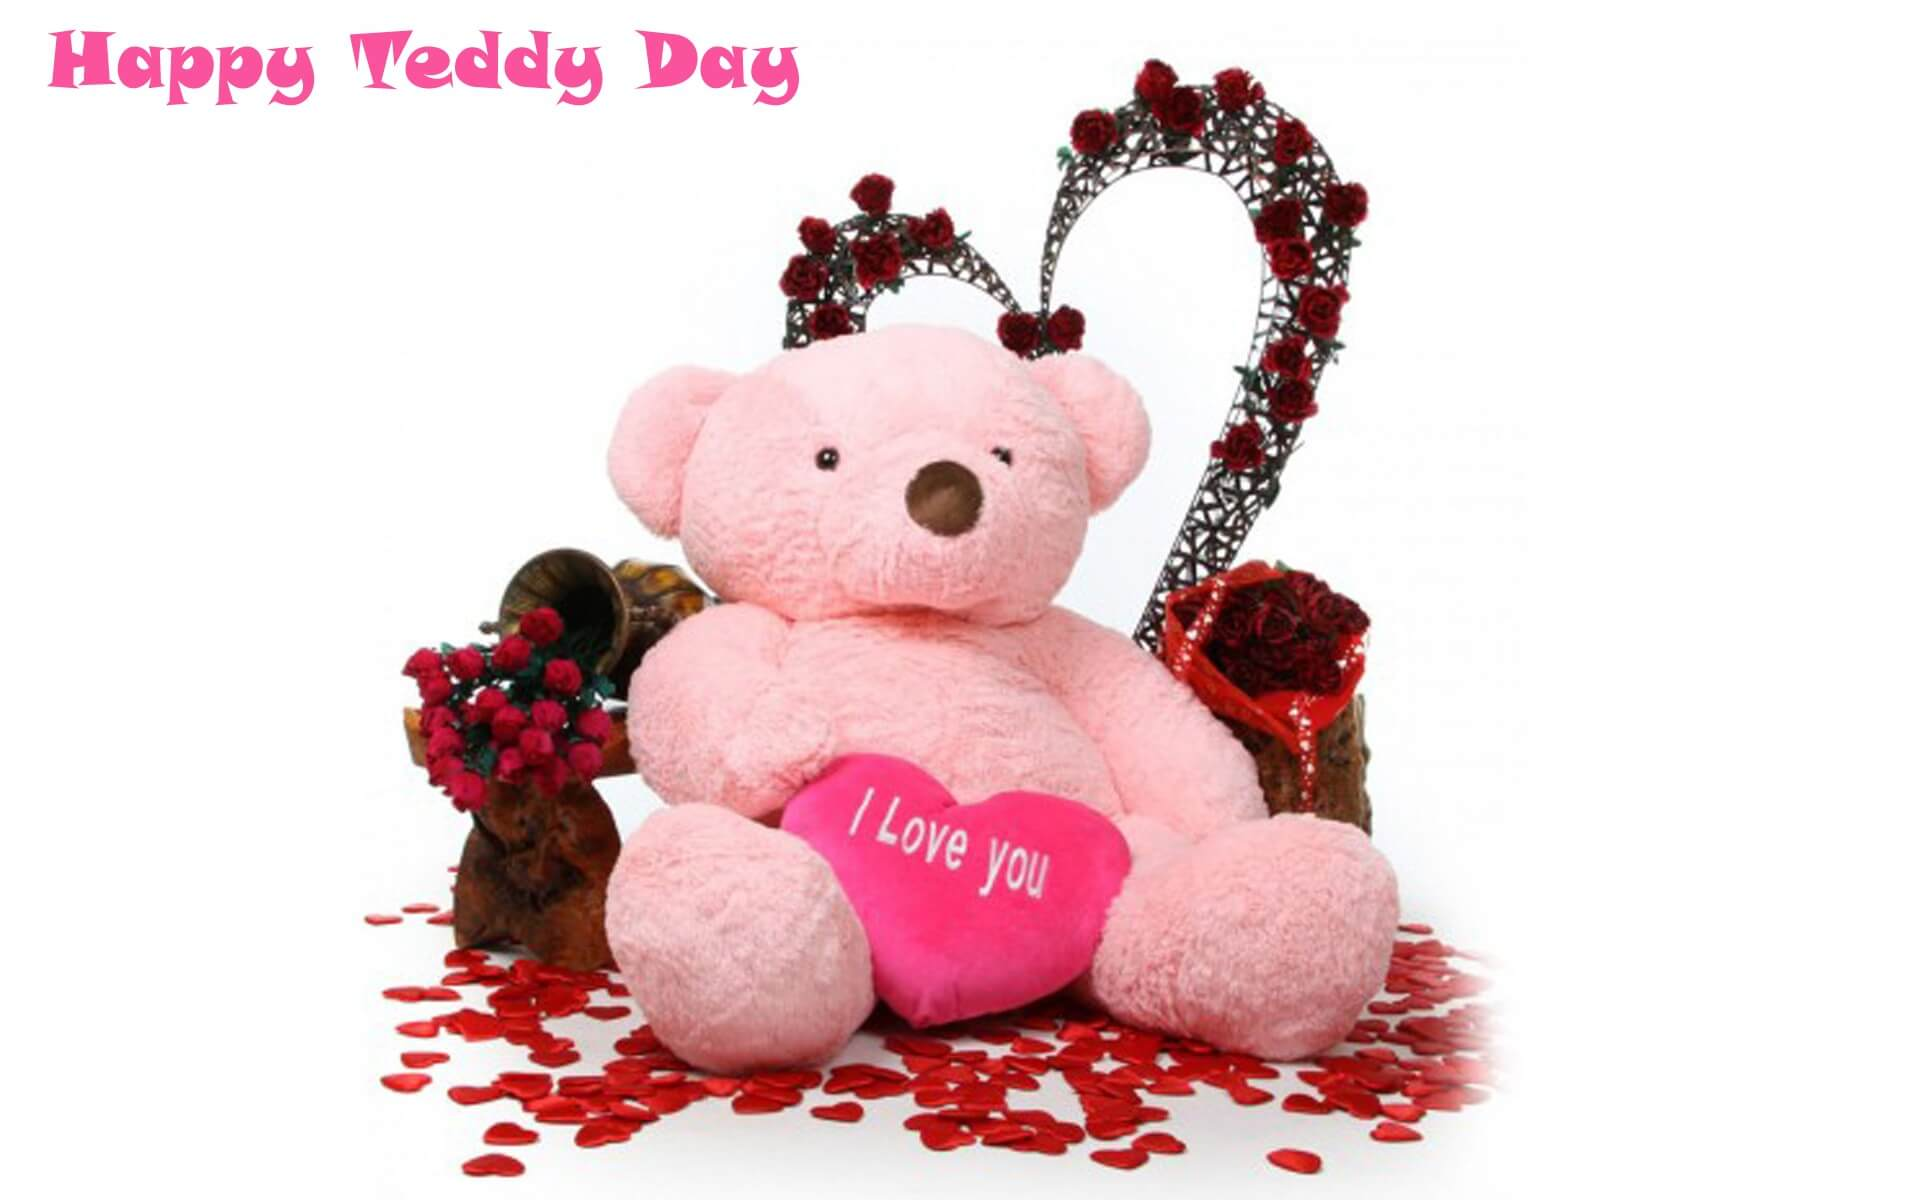 happy teddy day wishes bear i love you image february 10th hd wallpaper